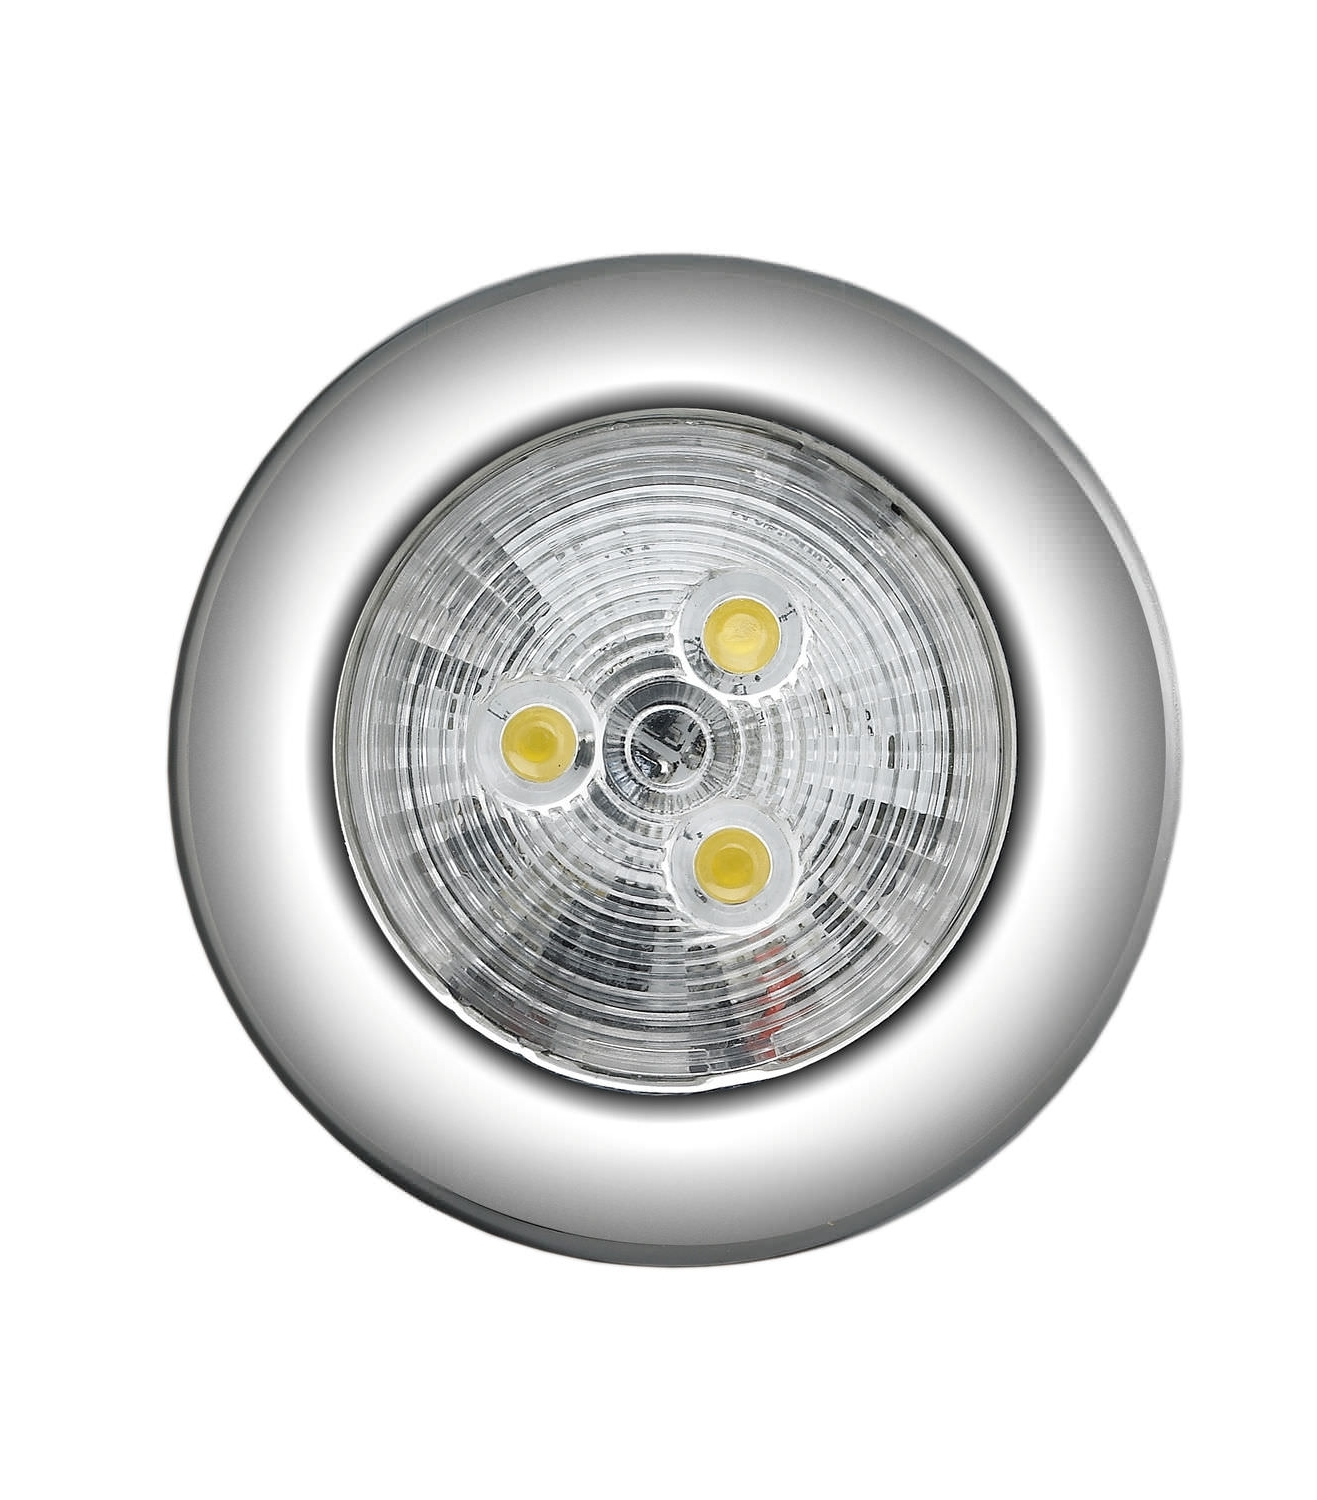 Newest Decorating : Outdoor Ceiling Light For Boats Led 00599Wh Aaa World With Regard To Outdoor Led Ceiling Lights (View 18 of 20)